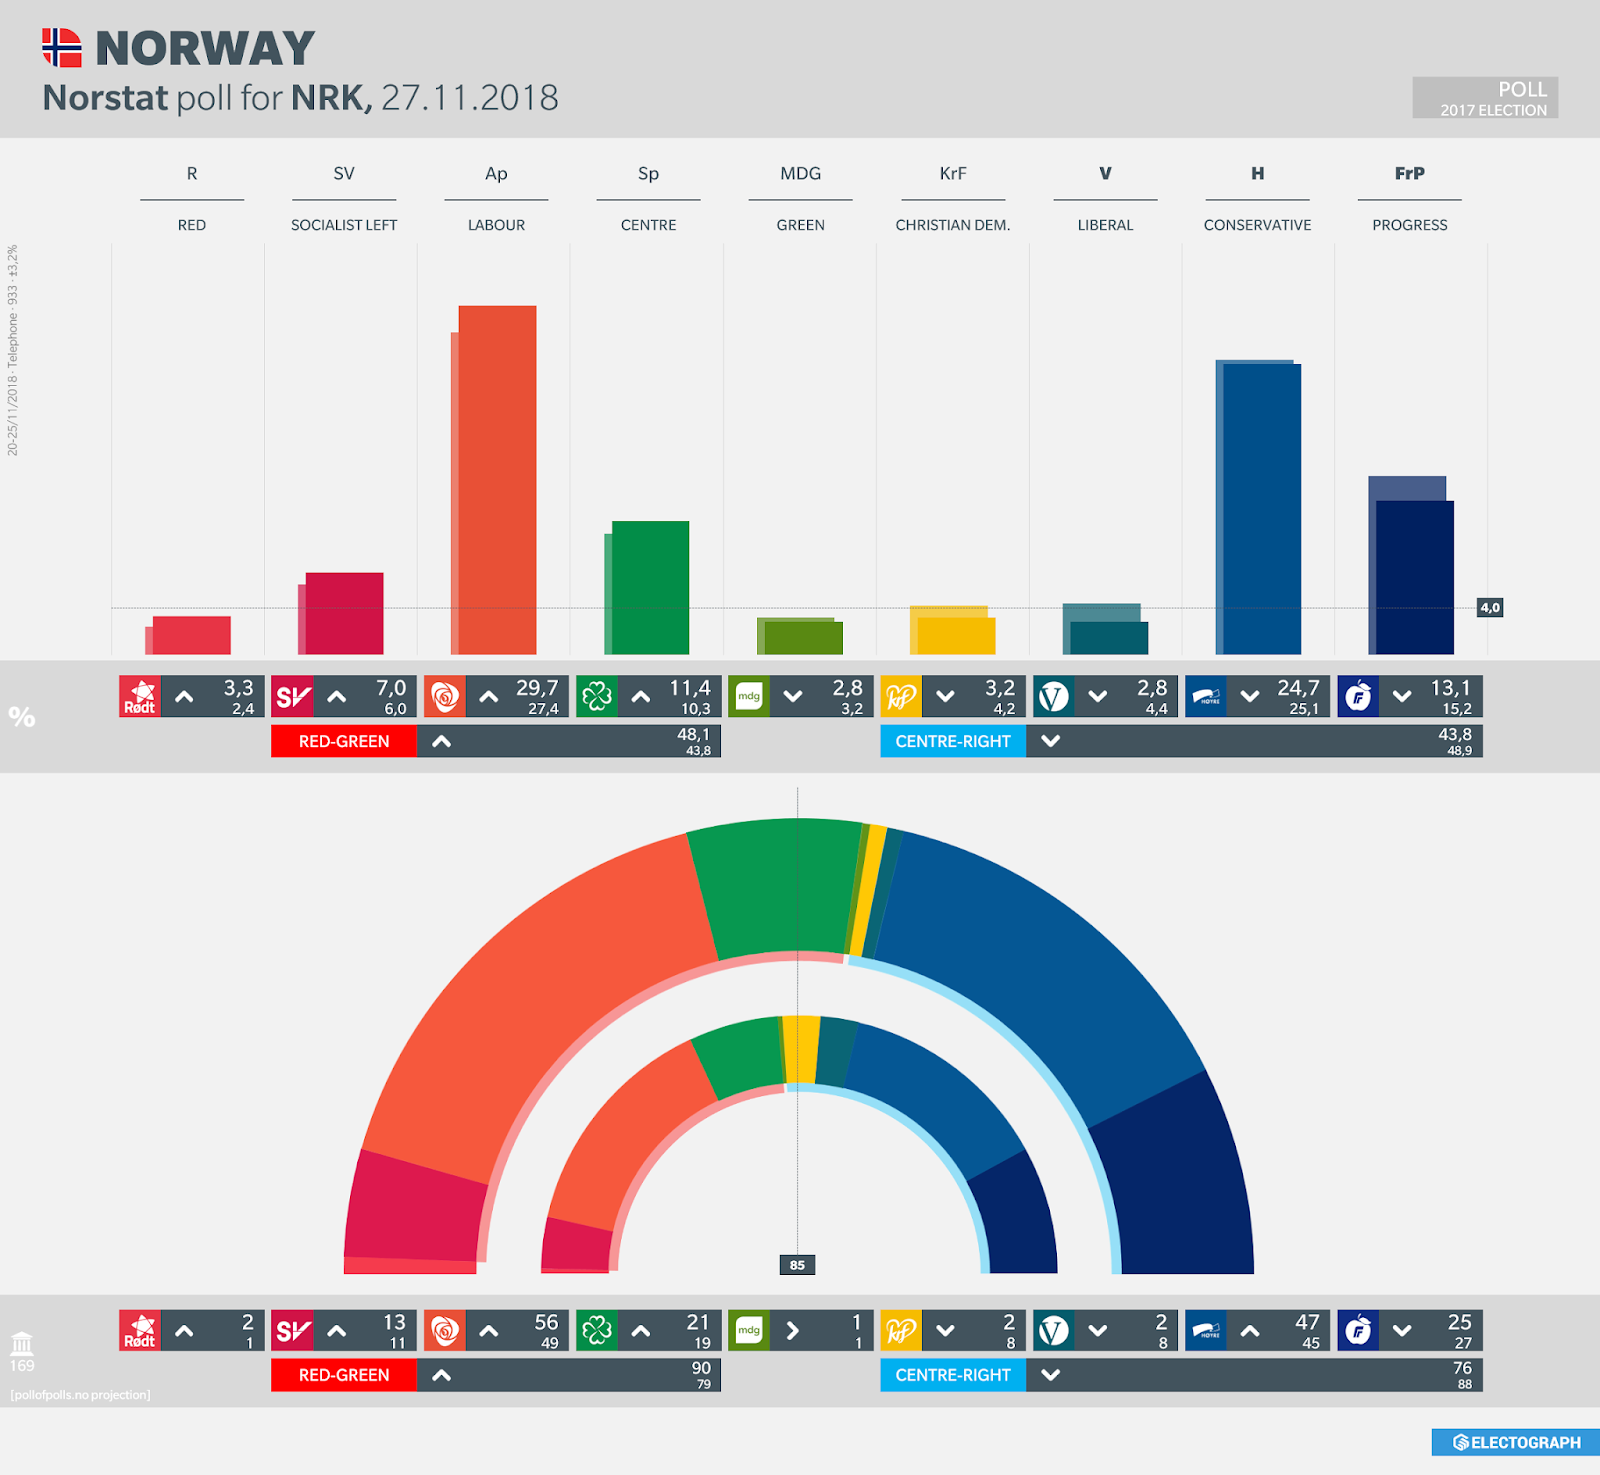 NORWAY: Norstat poll chart for NRK, 27 November 2018